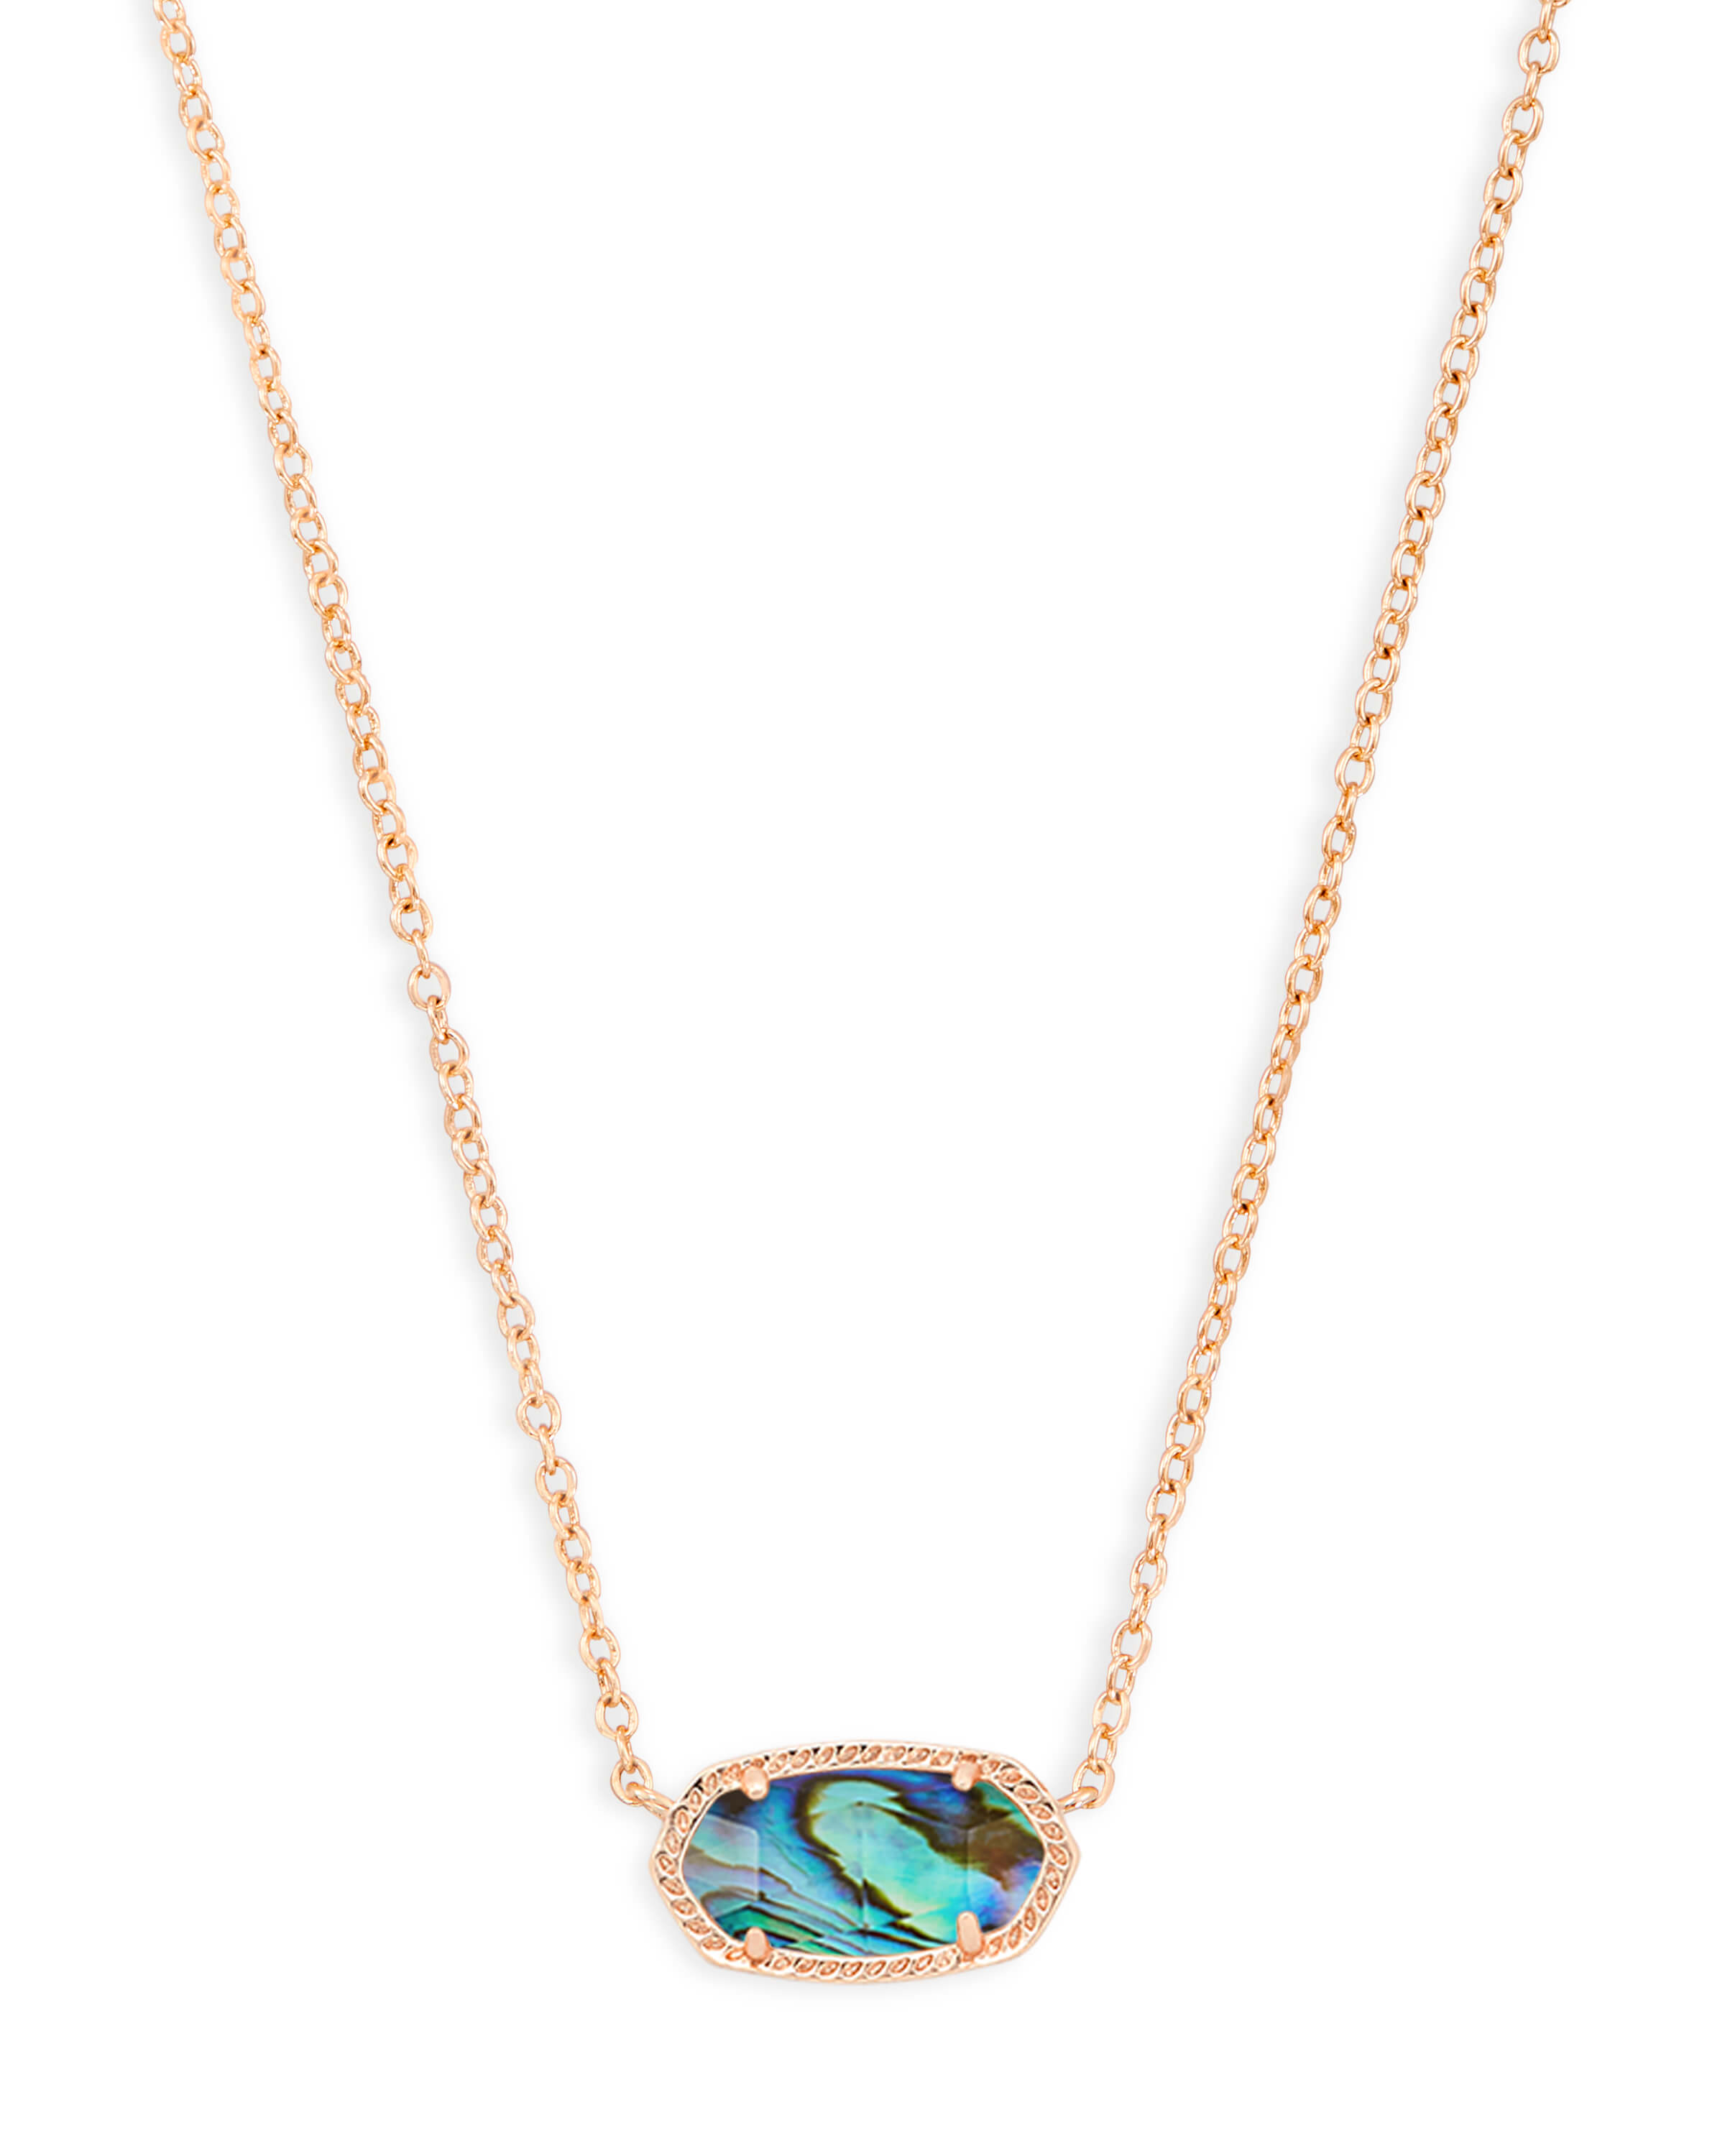 Elisa Rose Gold Pendant Necklace in Abalone Shell